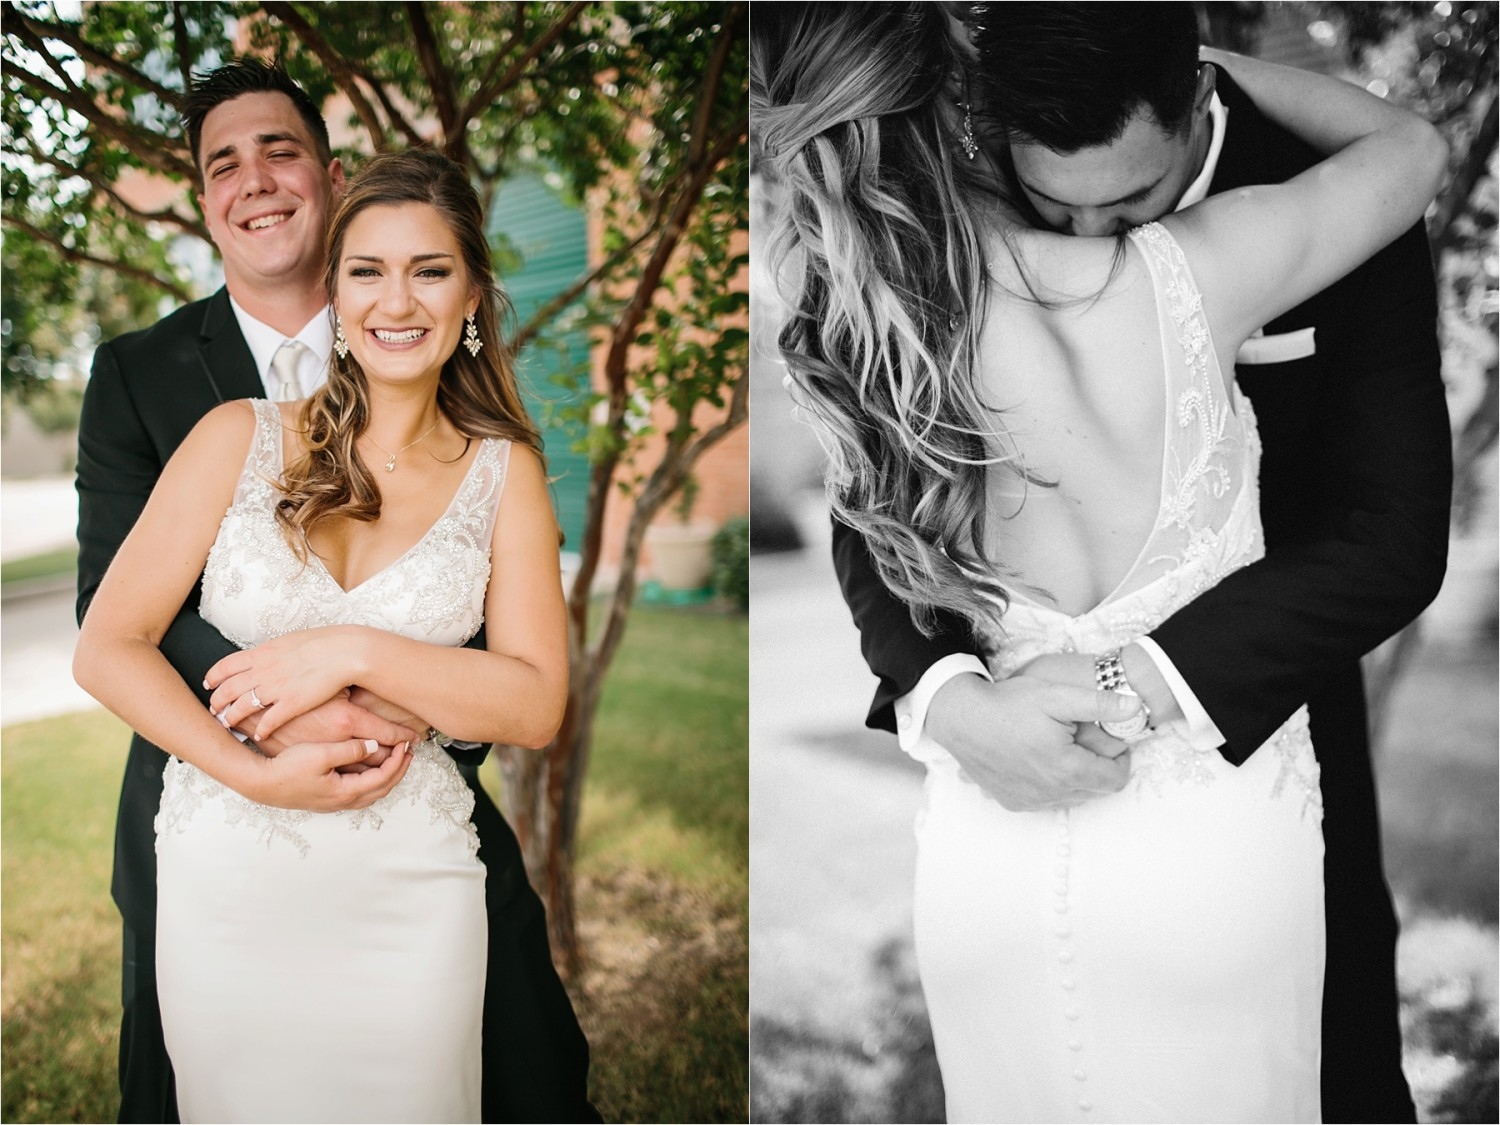 Holly + Jordan __ a black, gold, and greenery organic wedding at The Phoenix Ballroom in Waco, TX by North Texas Wedding Photographer Rachel Meagan Photography __ 40